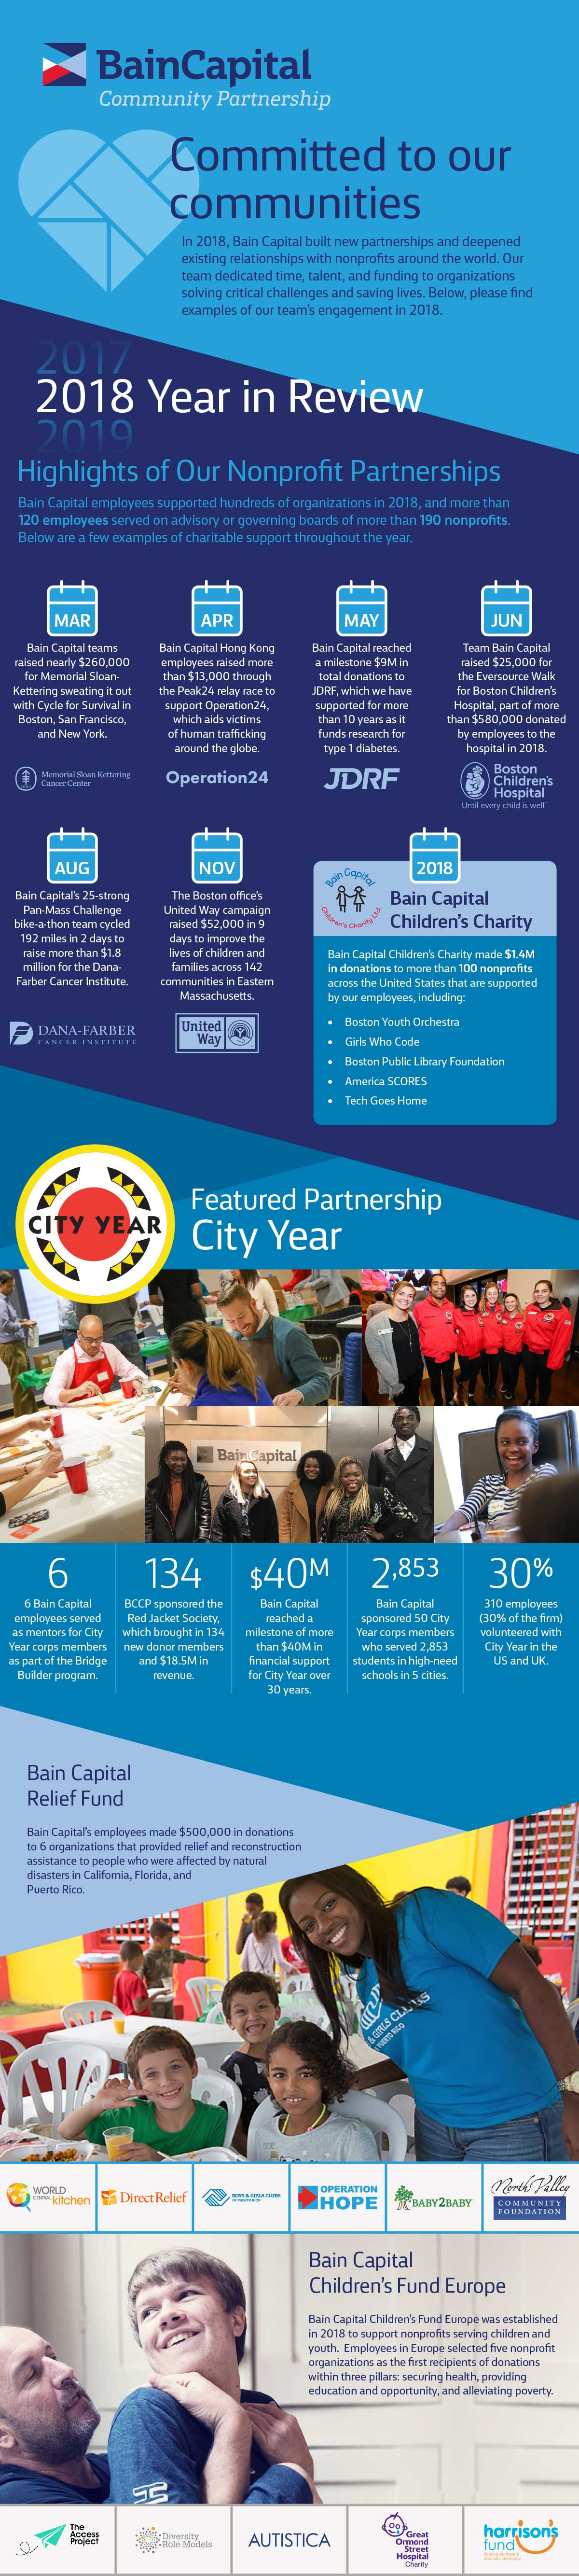 Bain Capital and City Year: 2016 - 2017 School Year Recap